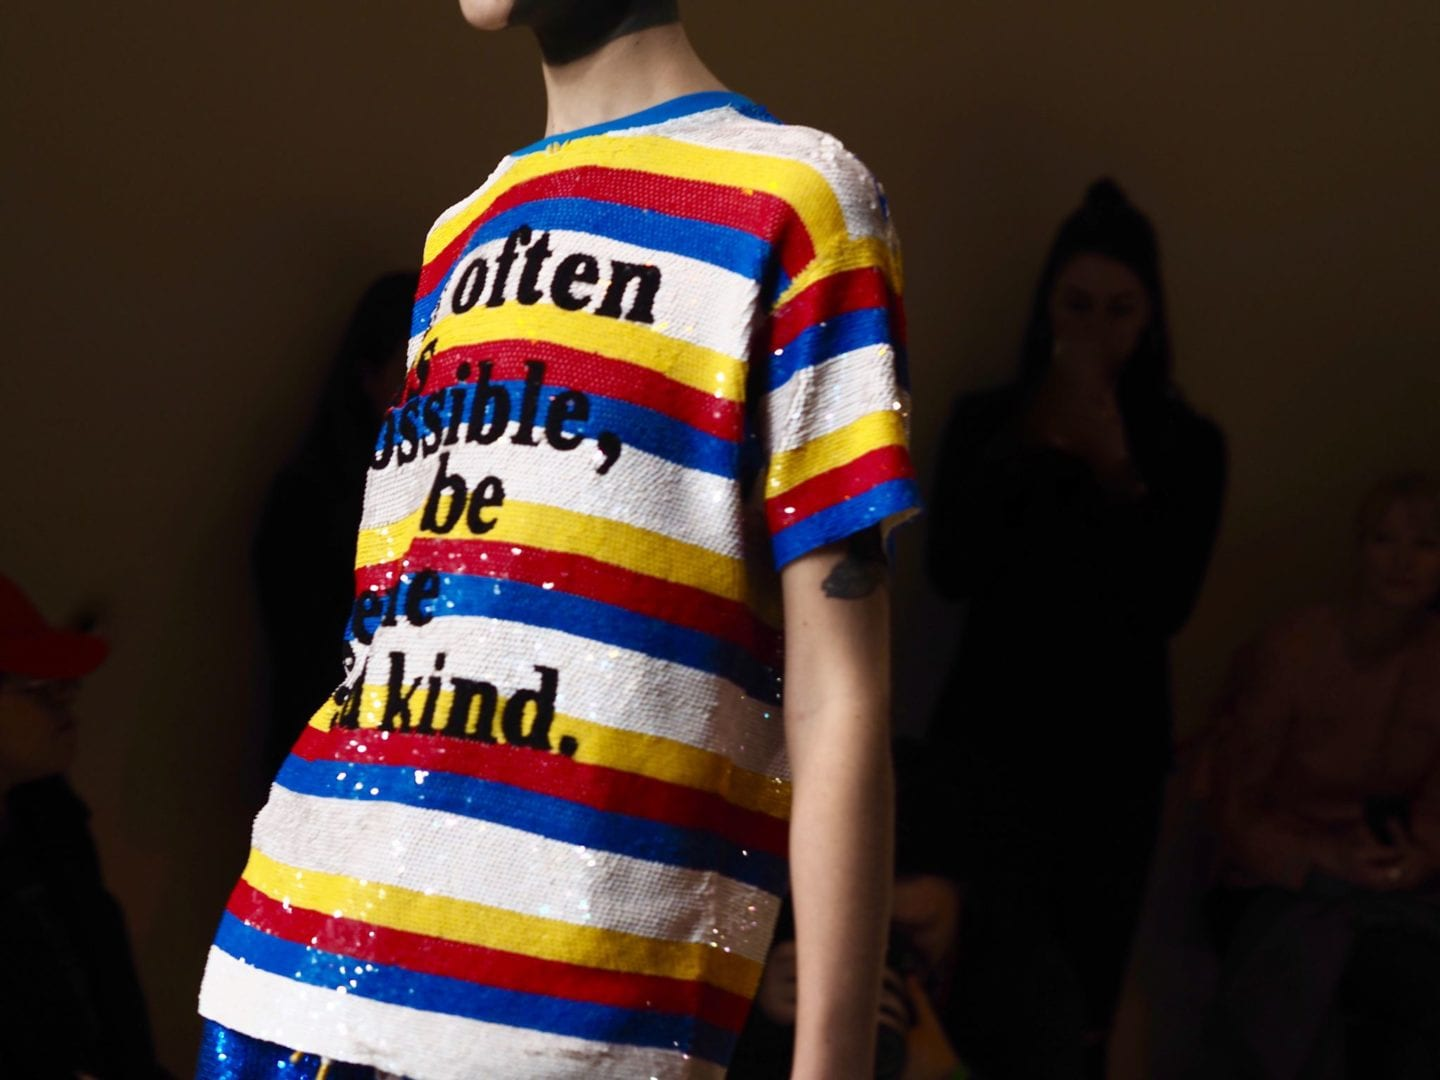 ashish-london-fashion-week-2017.-be-kind